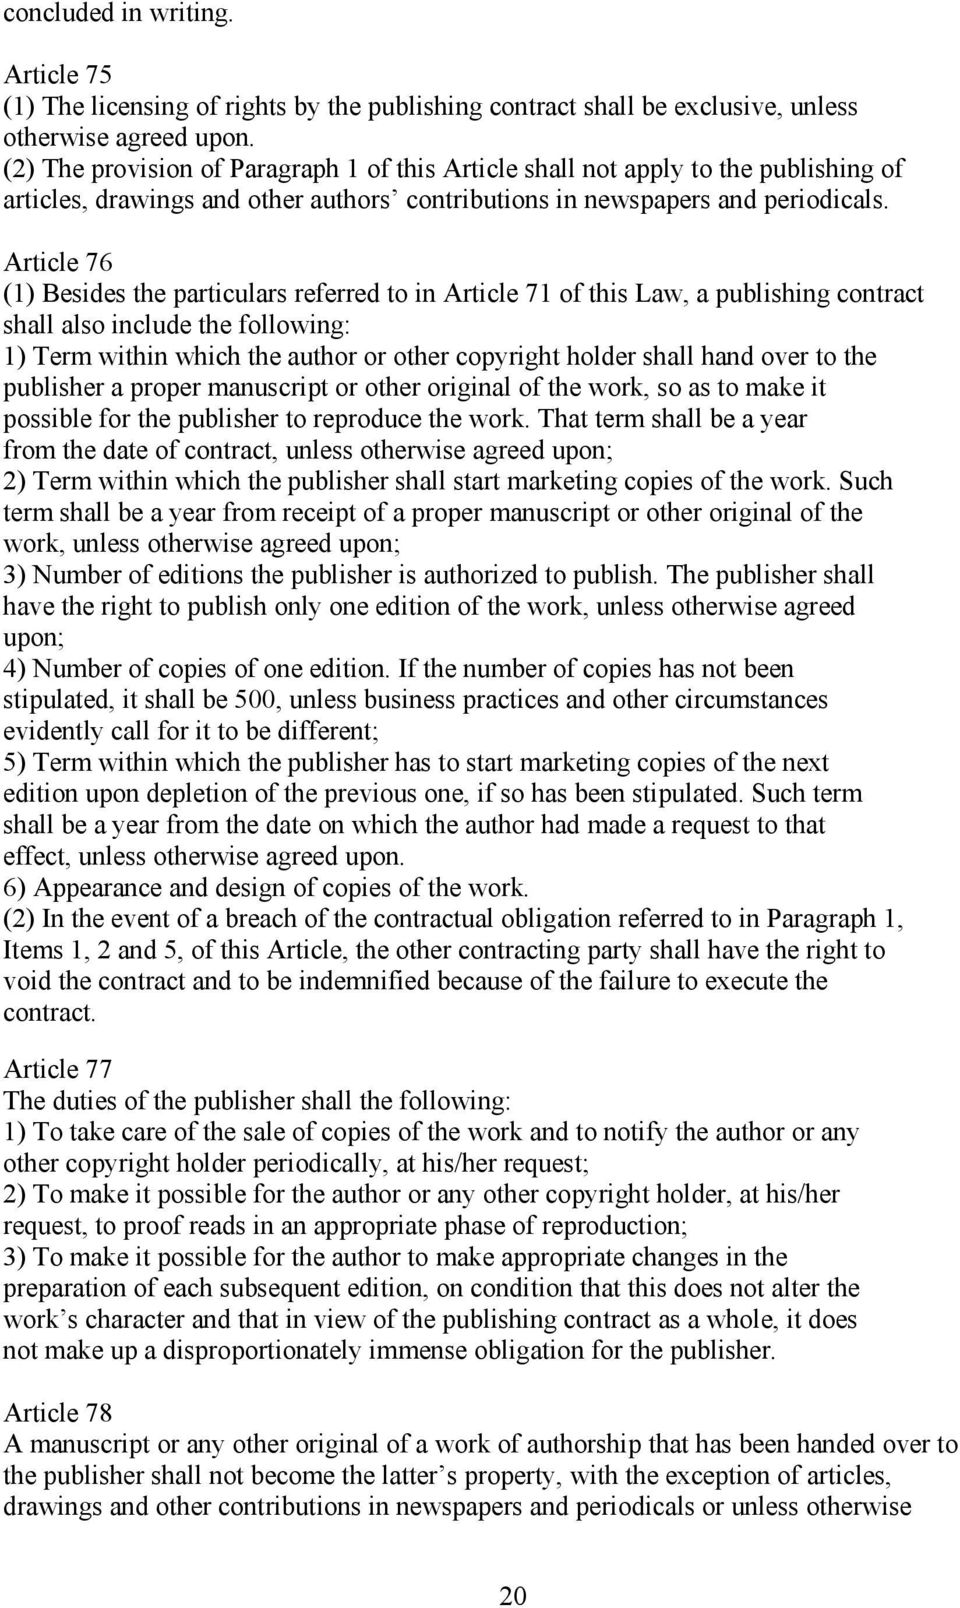 Article 76 (1) Besides the particulars referred to in Article 71 of this Law, a publishing contract shall also include the following: 1) Term within which the author or other copyright holder shall